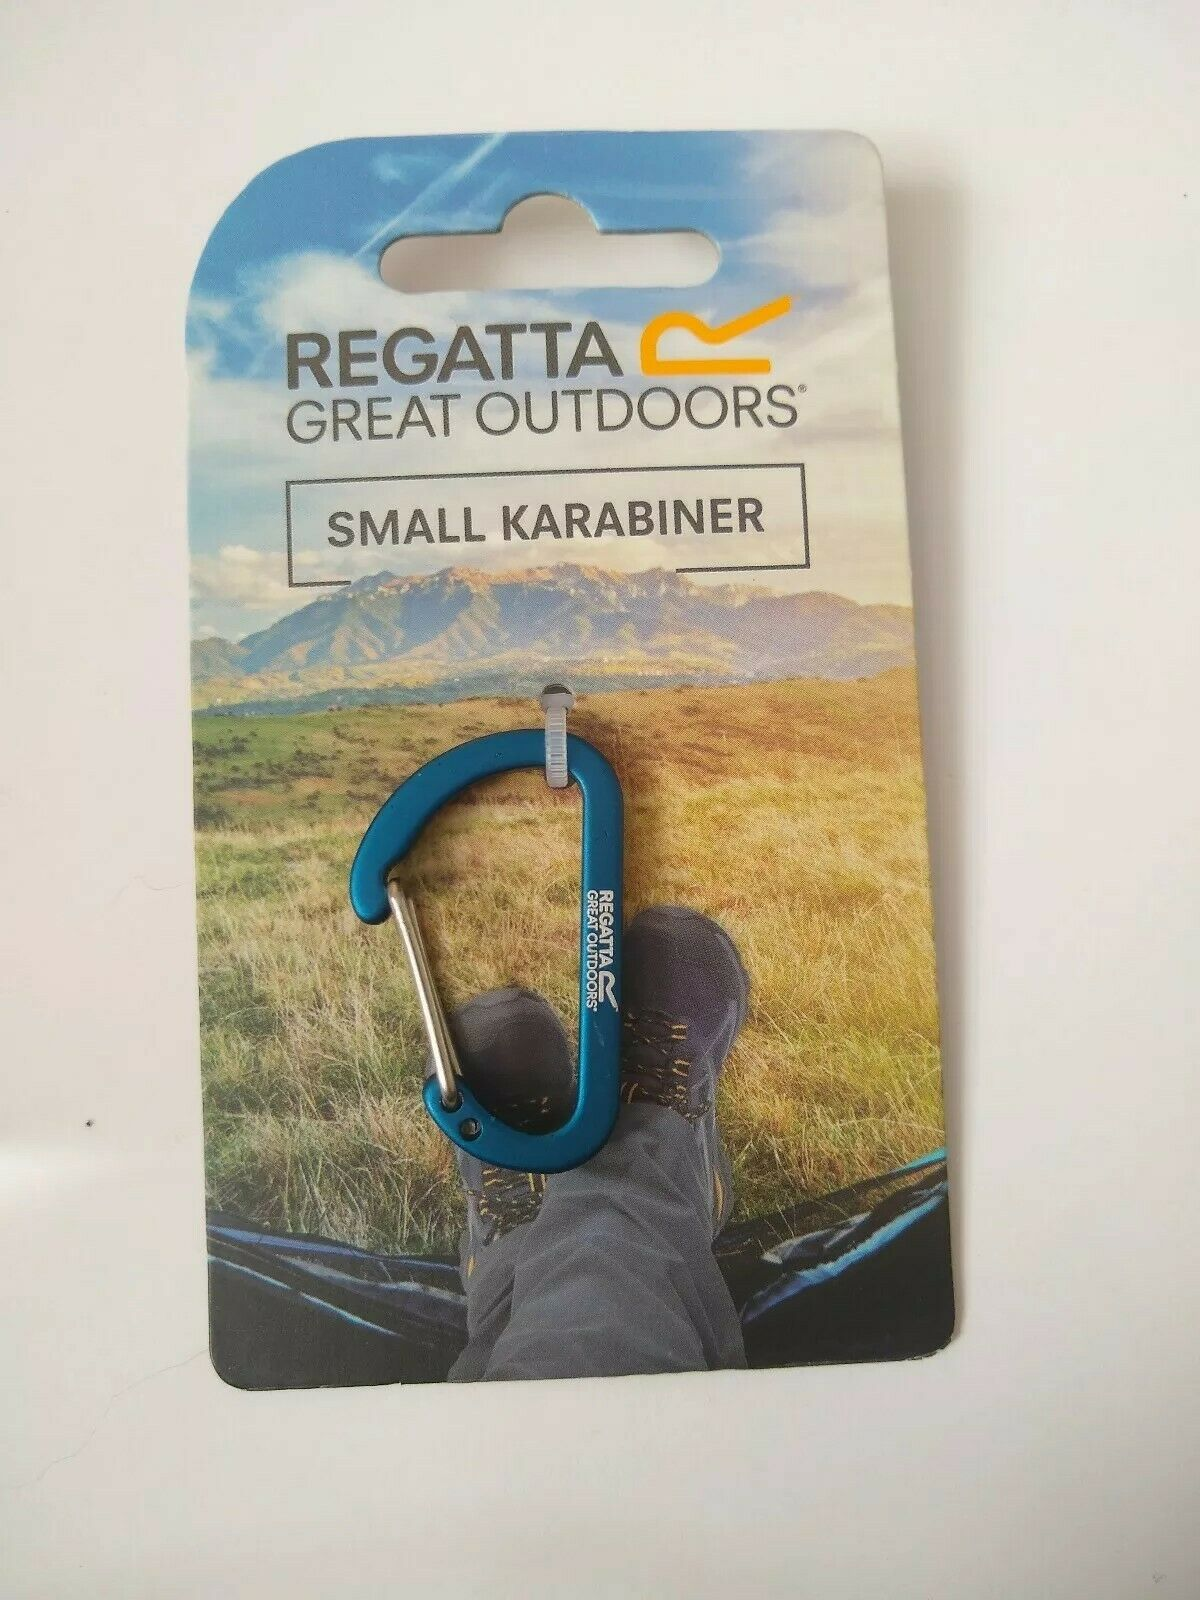 Available in Oxford Blue//Amber Glow Carabiner Large Carabiner Clip Regatta